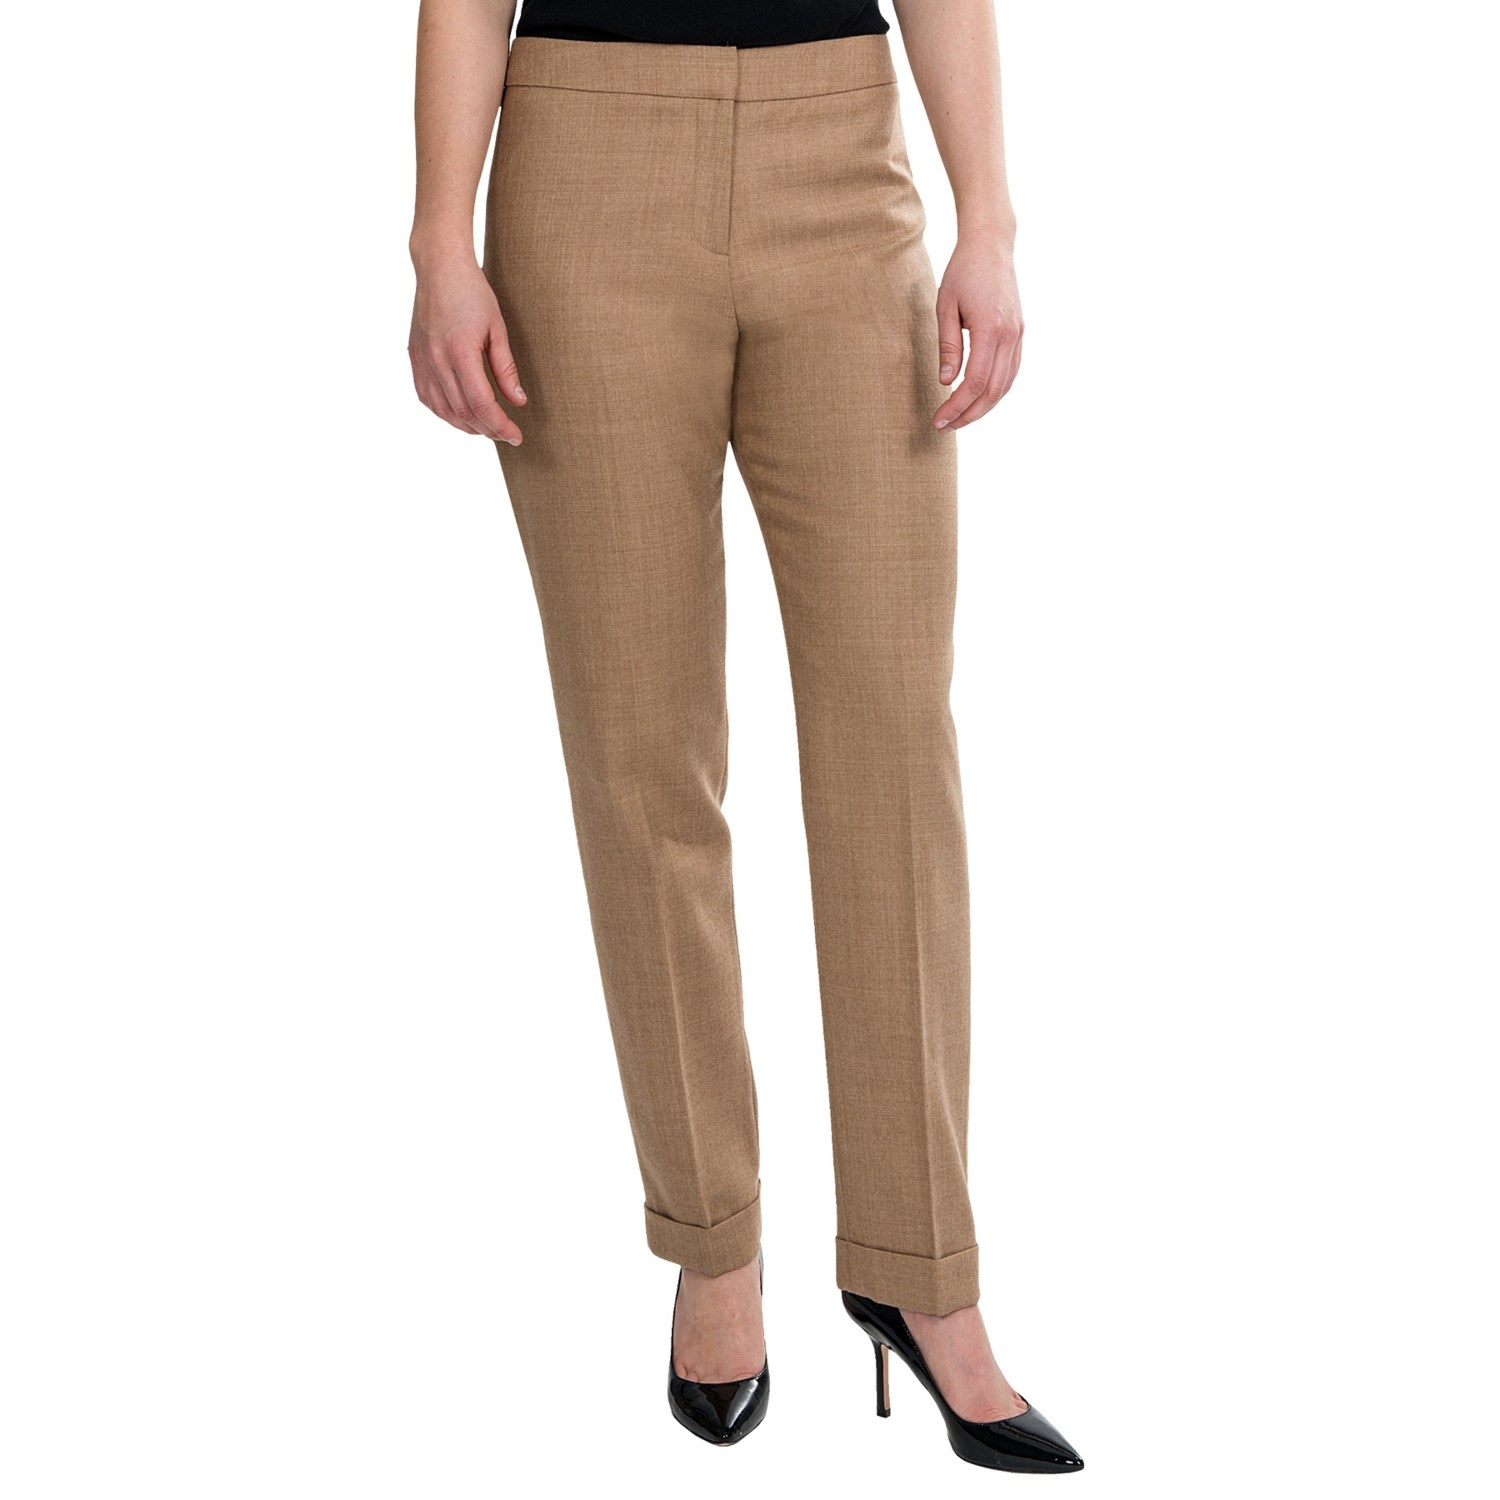 Find great deals on eBay for womens camel pants. Shop with confidence.